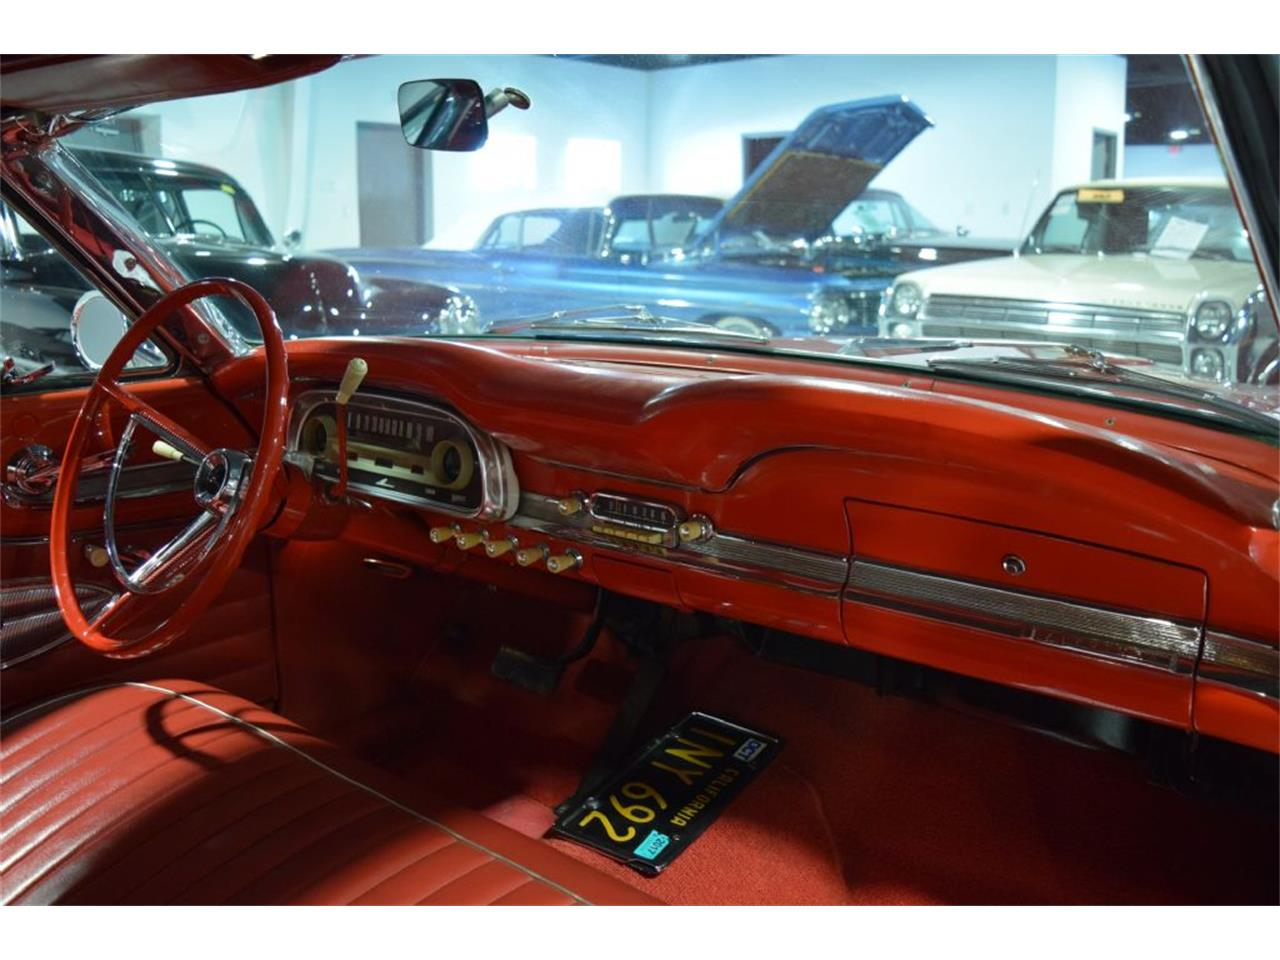 1963 Ford Falcon Futura for sale in Sioux City, IA – photo 23